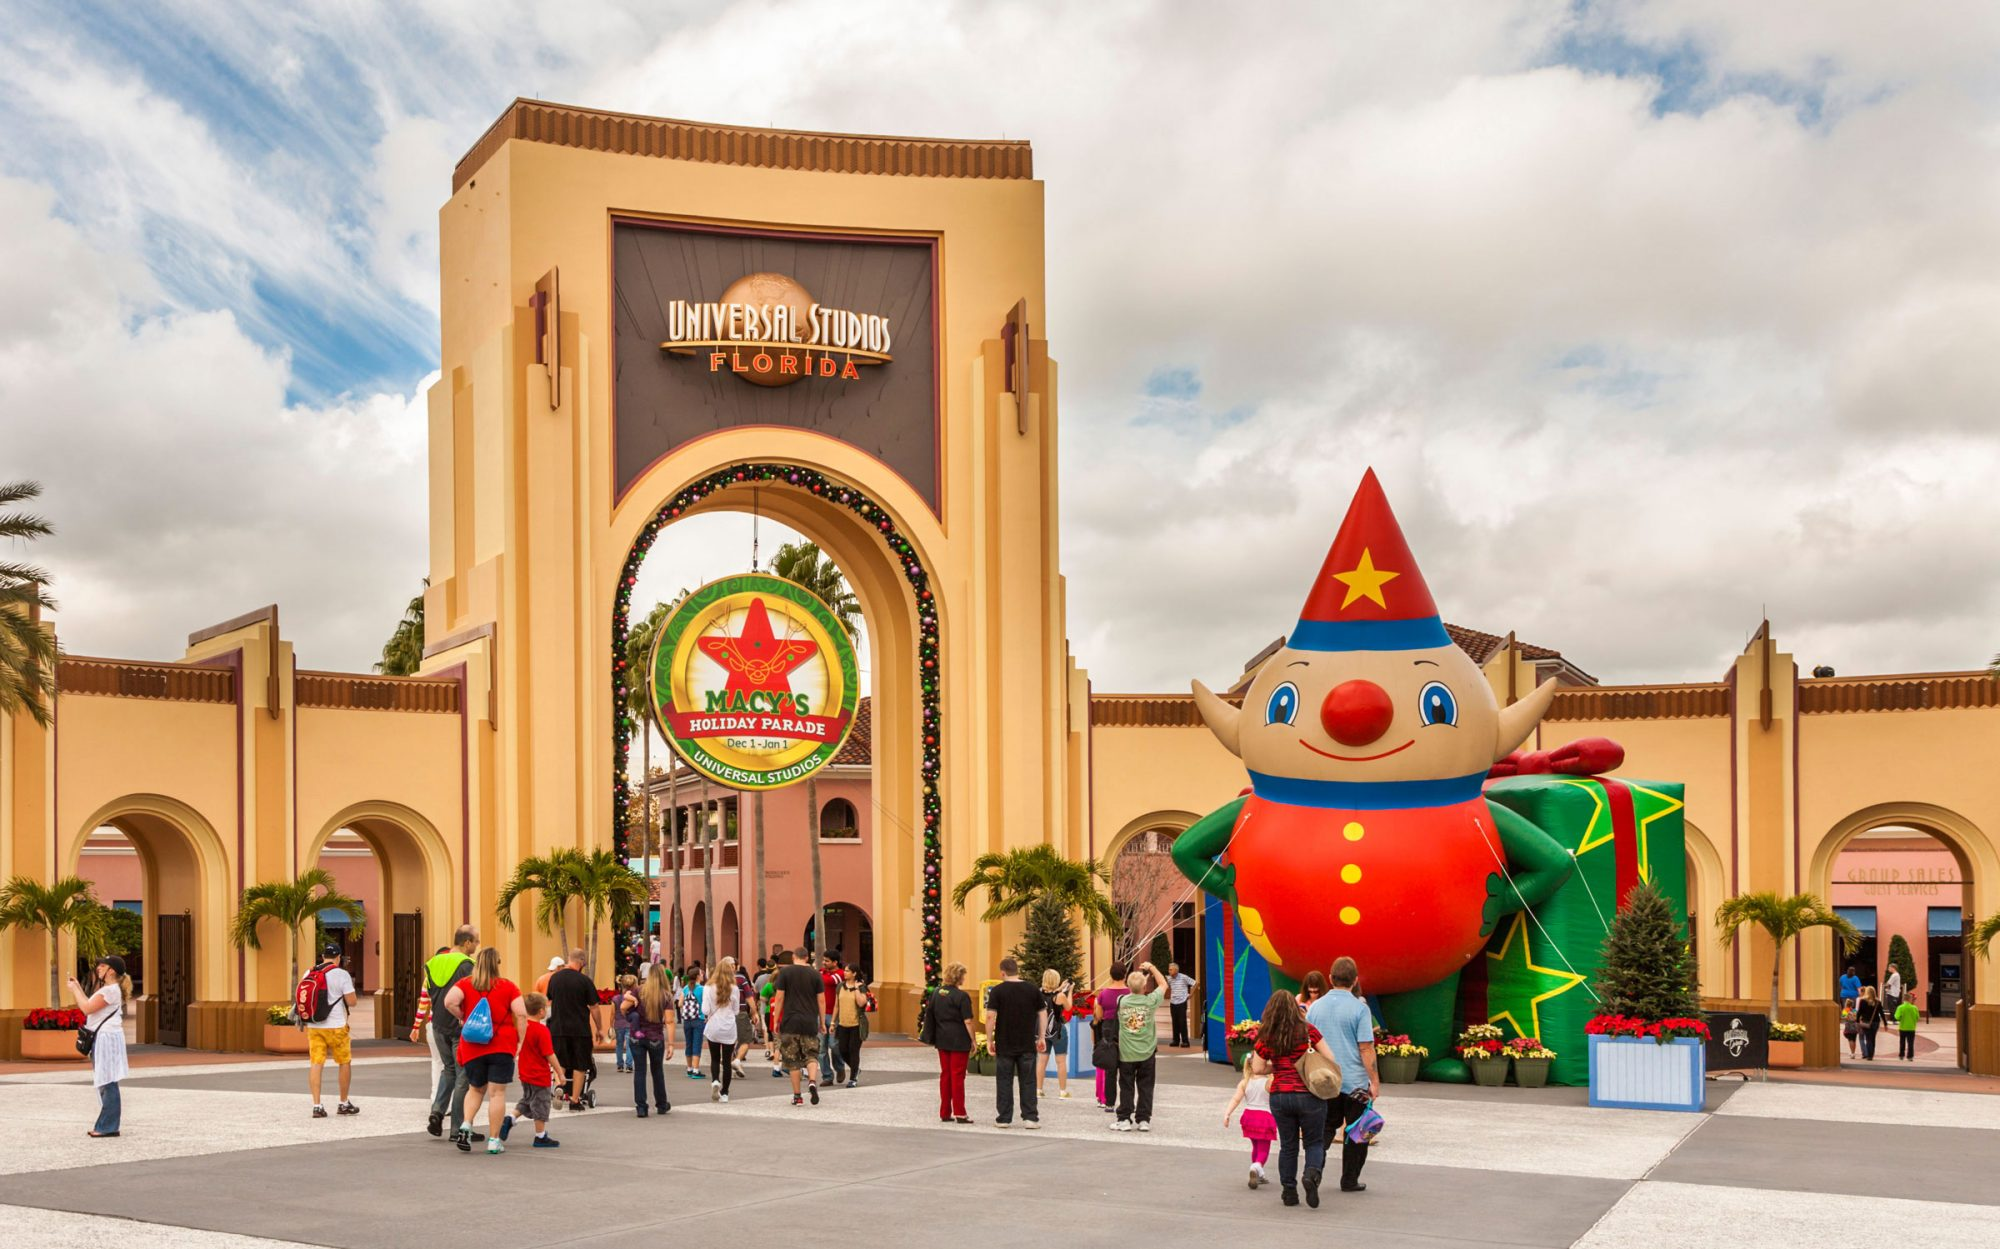 Disney Christmas Travel Tips: See the Macy's Holiday Parade in Person at Universal